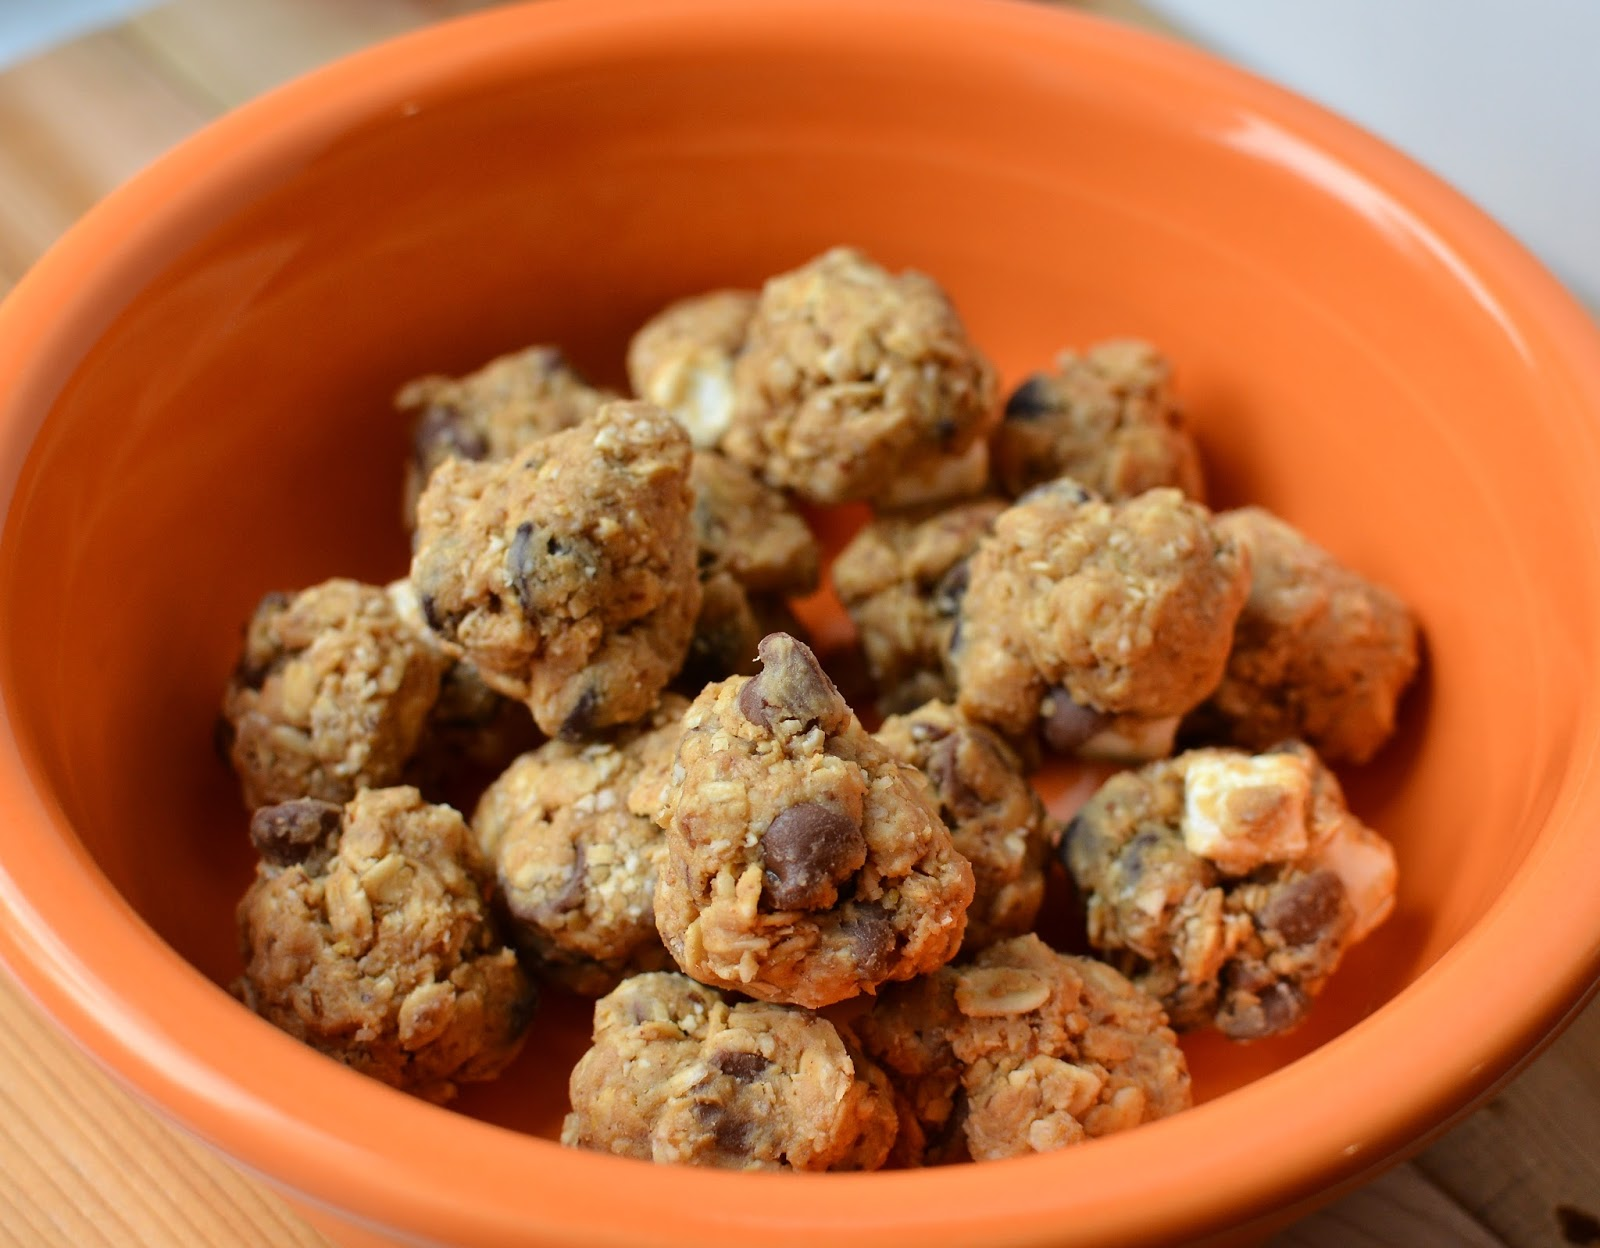 Peanut Butter Snack Balls, delicious and healthy, perfect for a quick energy boost!